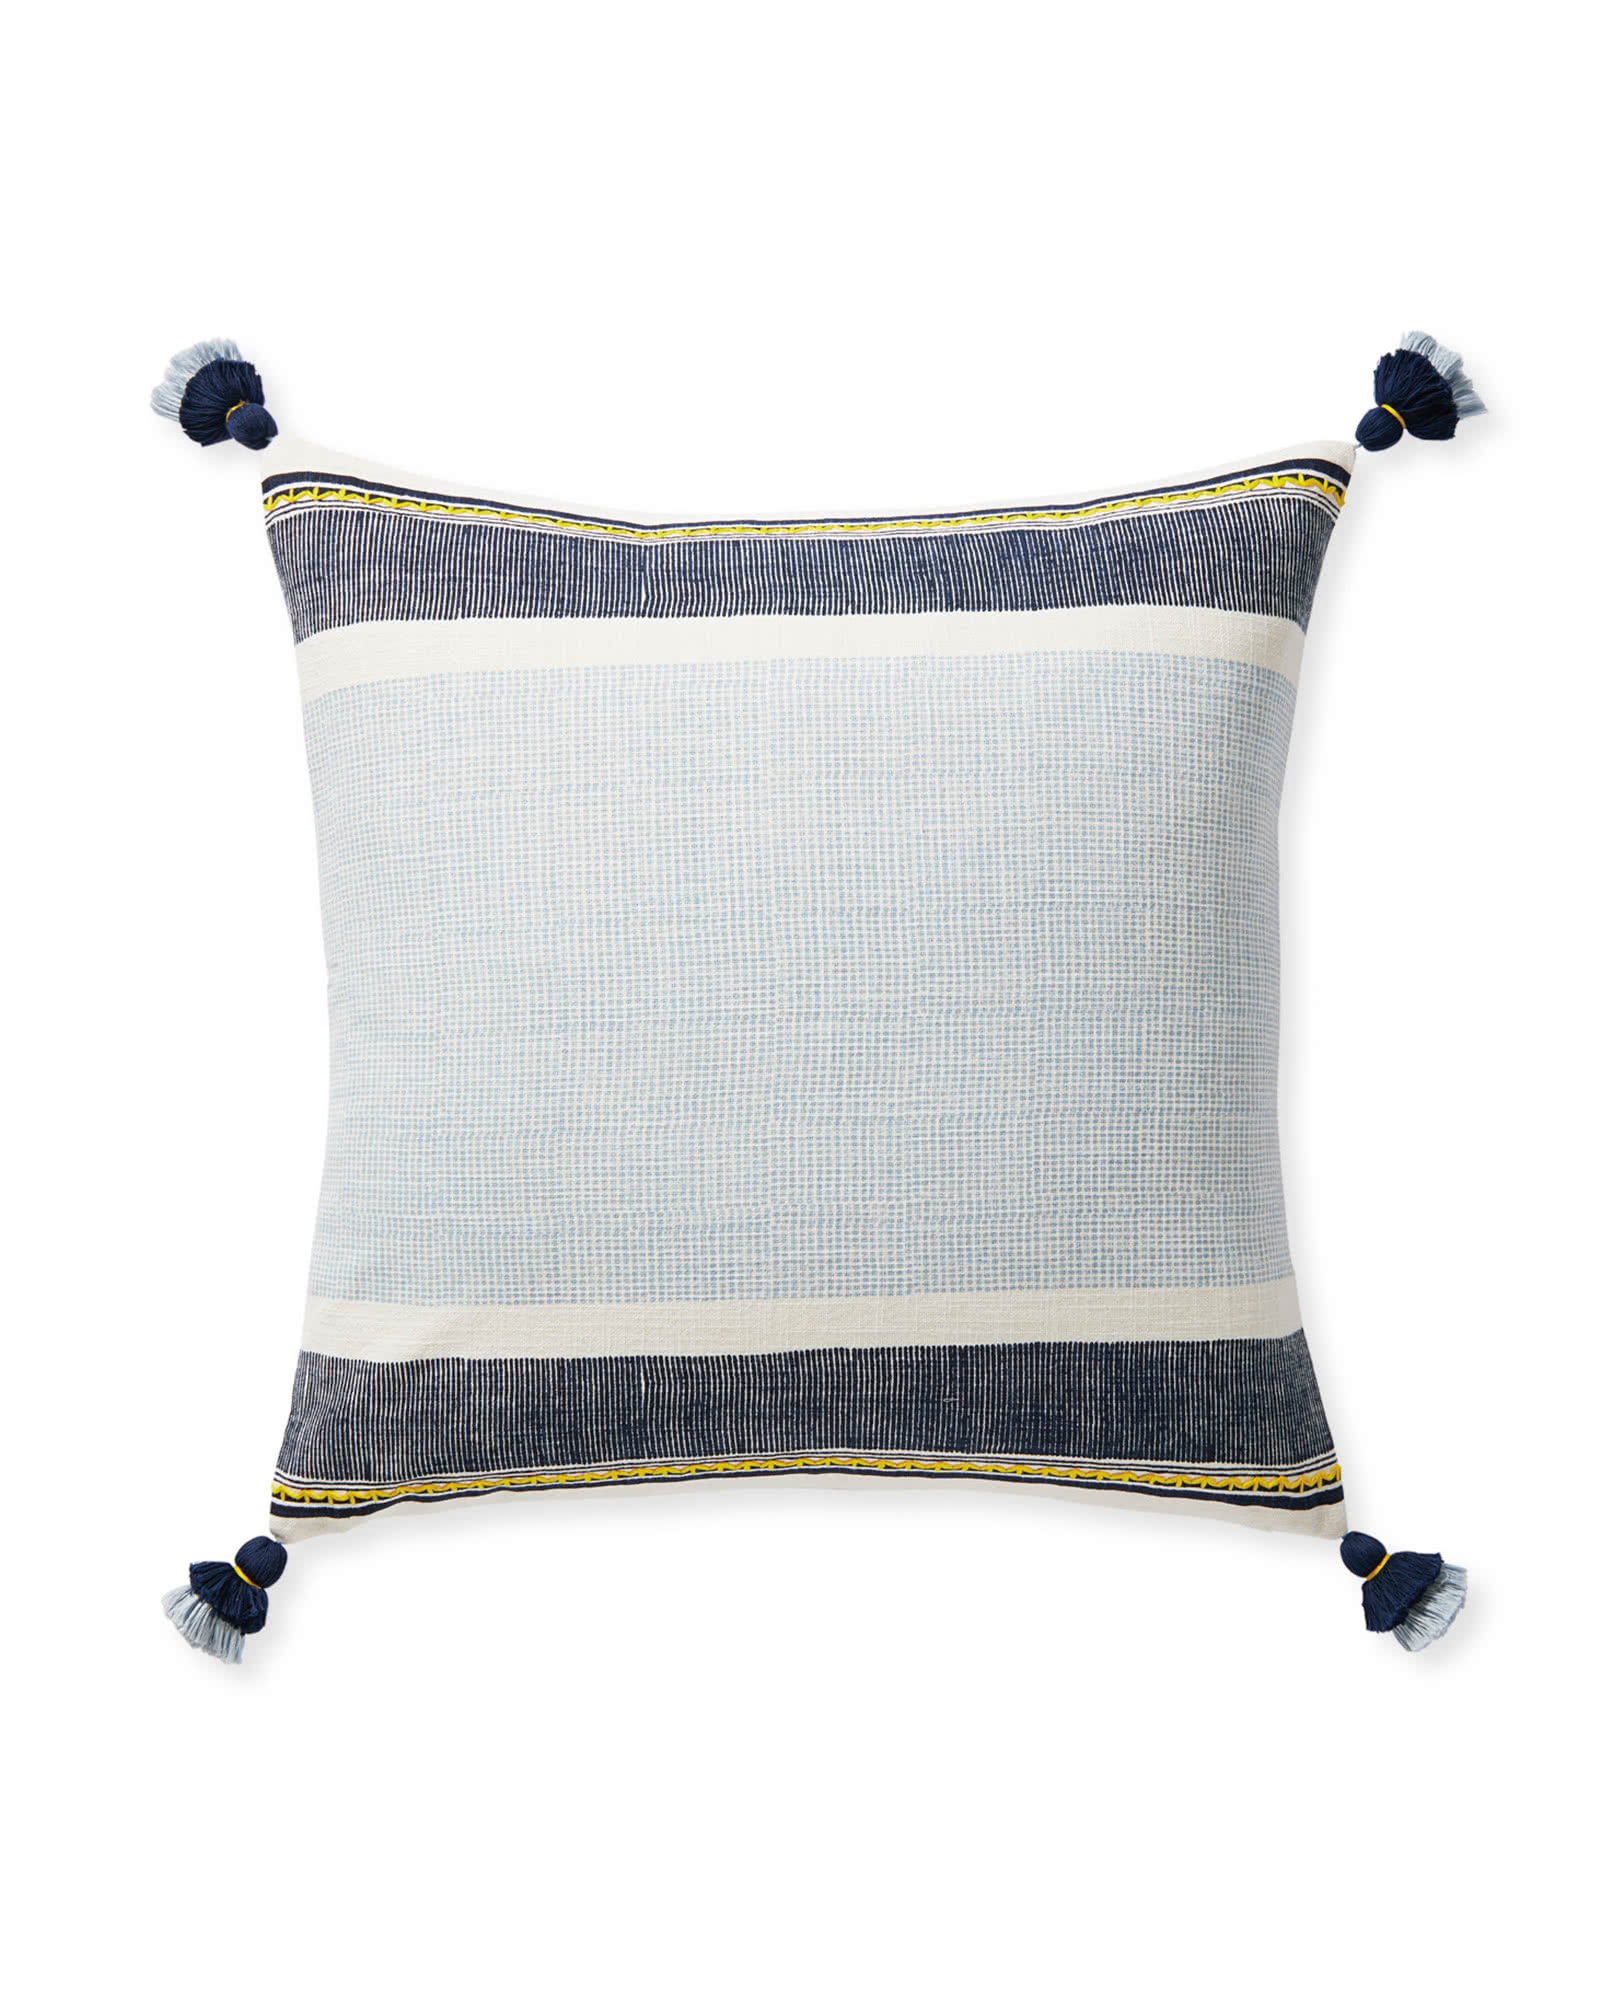 Aviv Pillow Cover, Navy